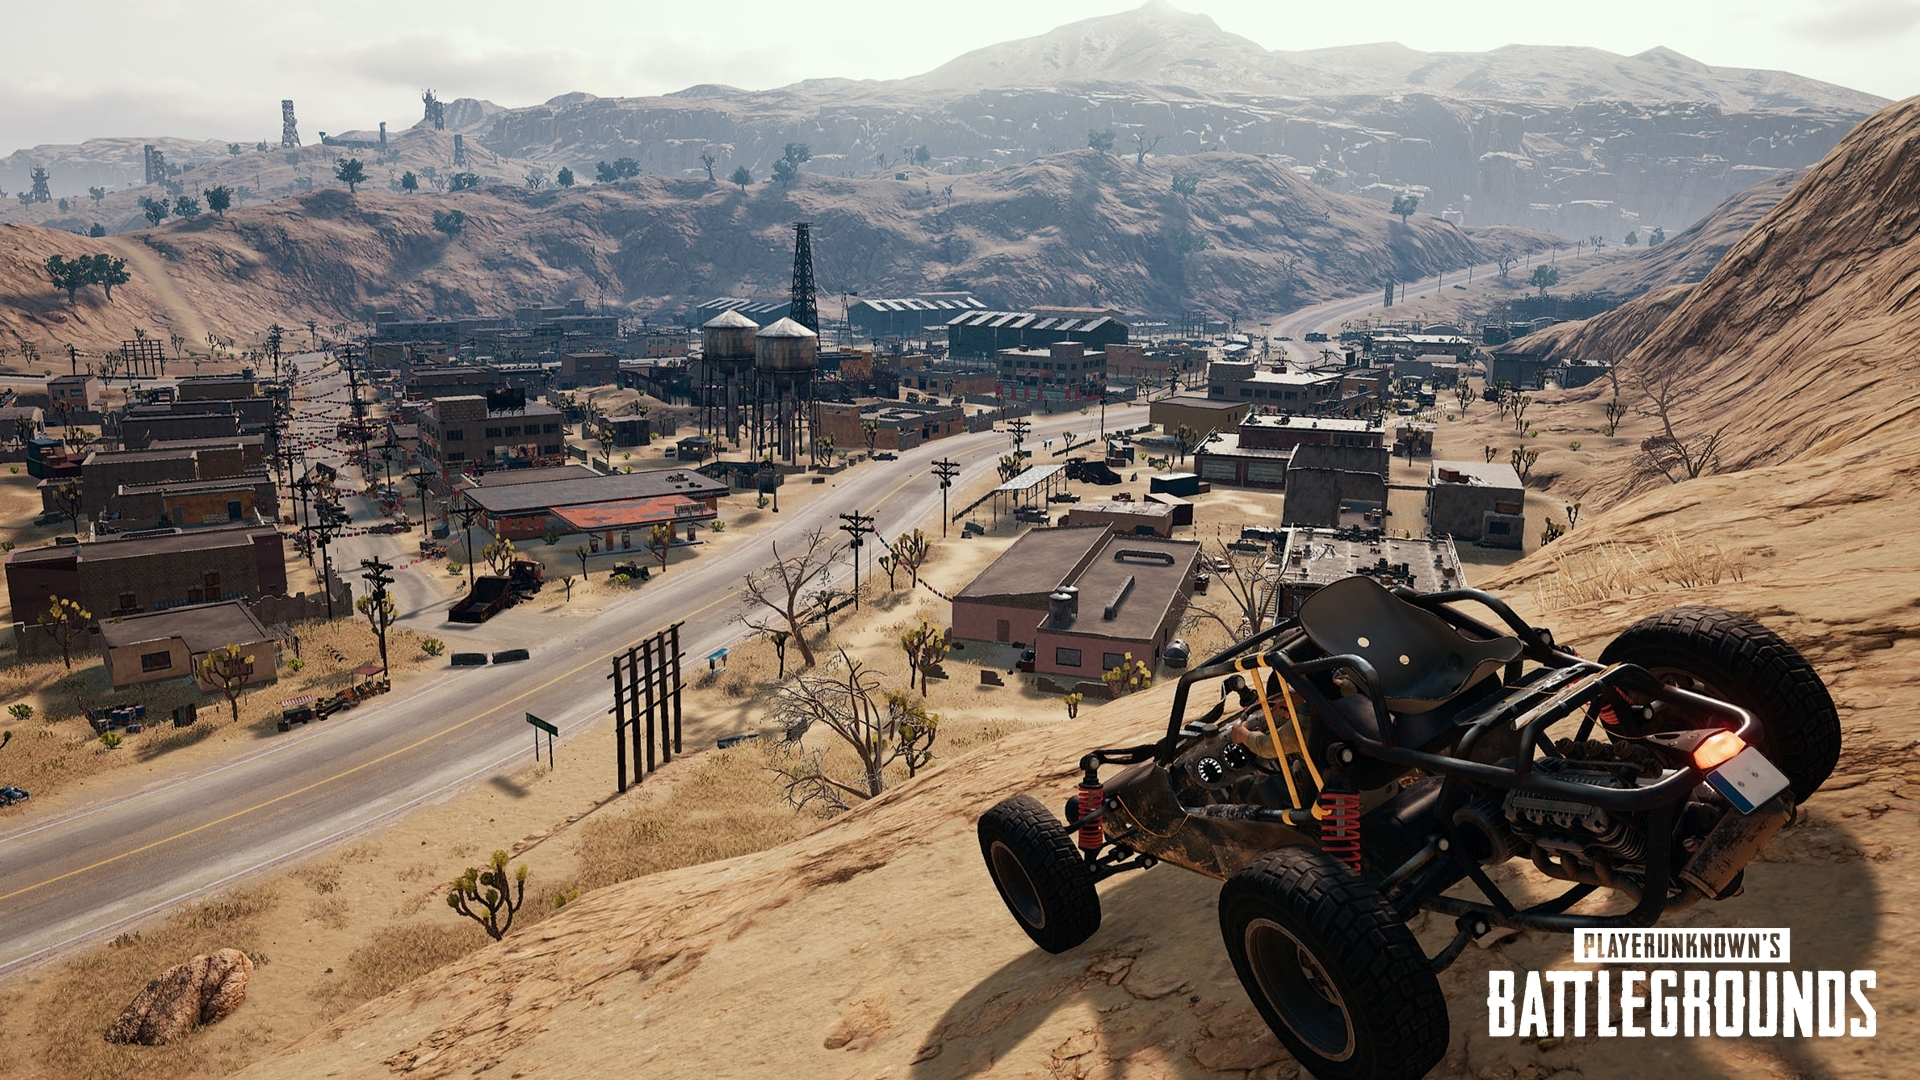 Pubg Hd Grafik: Major PUBG PC Patch Changes Blue Zone Speed And Damage